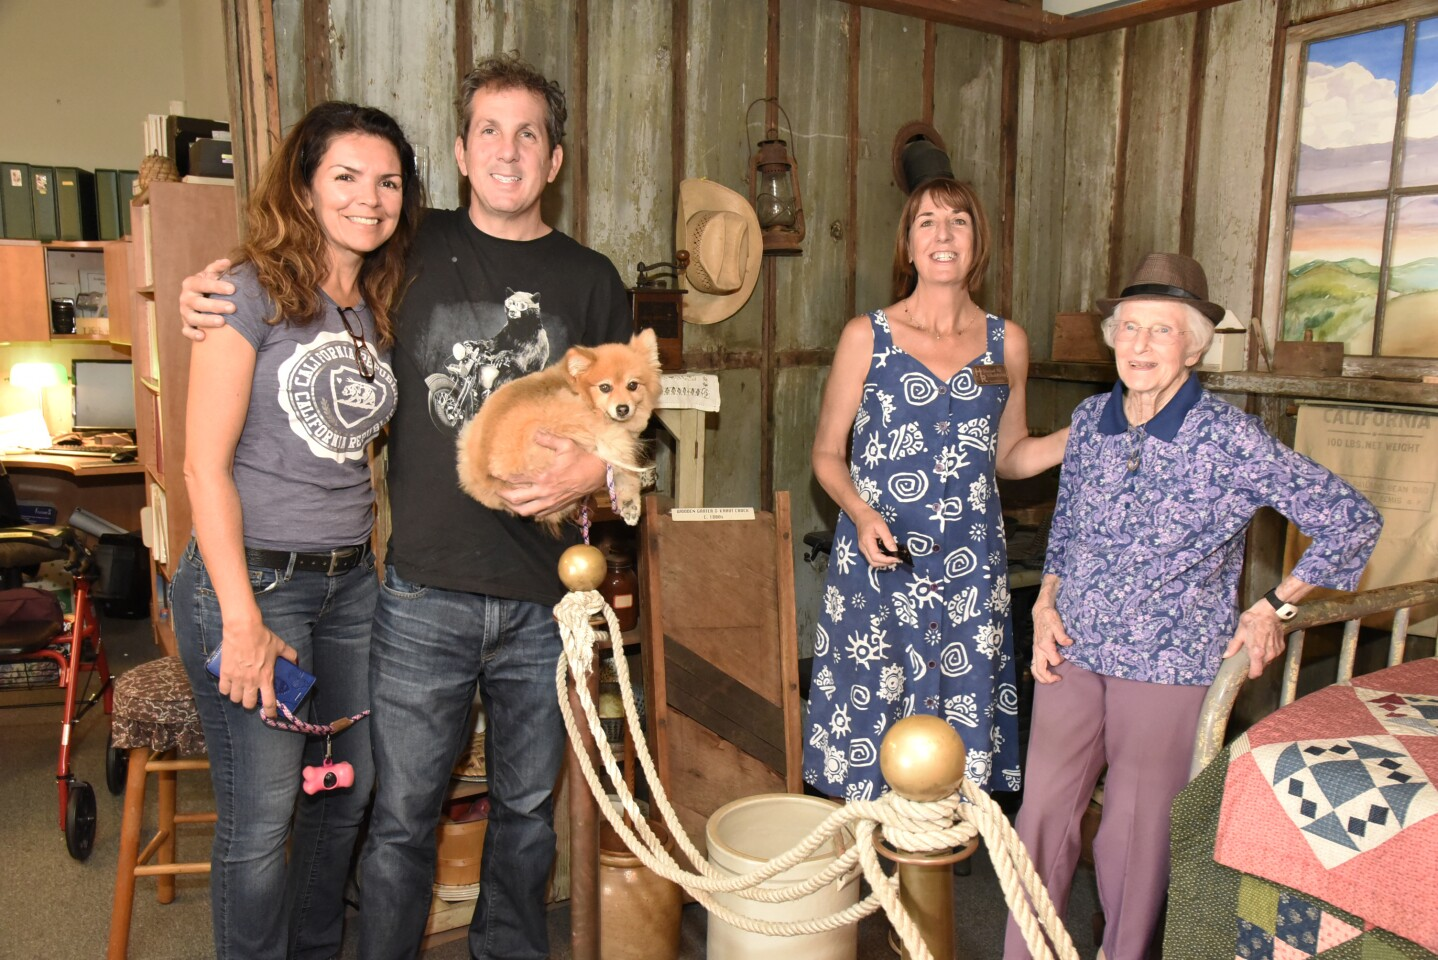 Adriana Rossarda and Jerome Farmer, The San Dieguito Heritage Museum Board President Sinéad Ni Chabhláin, SDHM founding member and volunteer tour guide Jan Grice